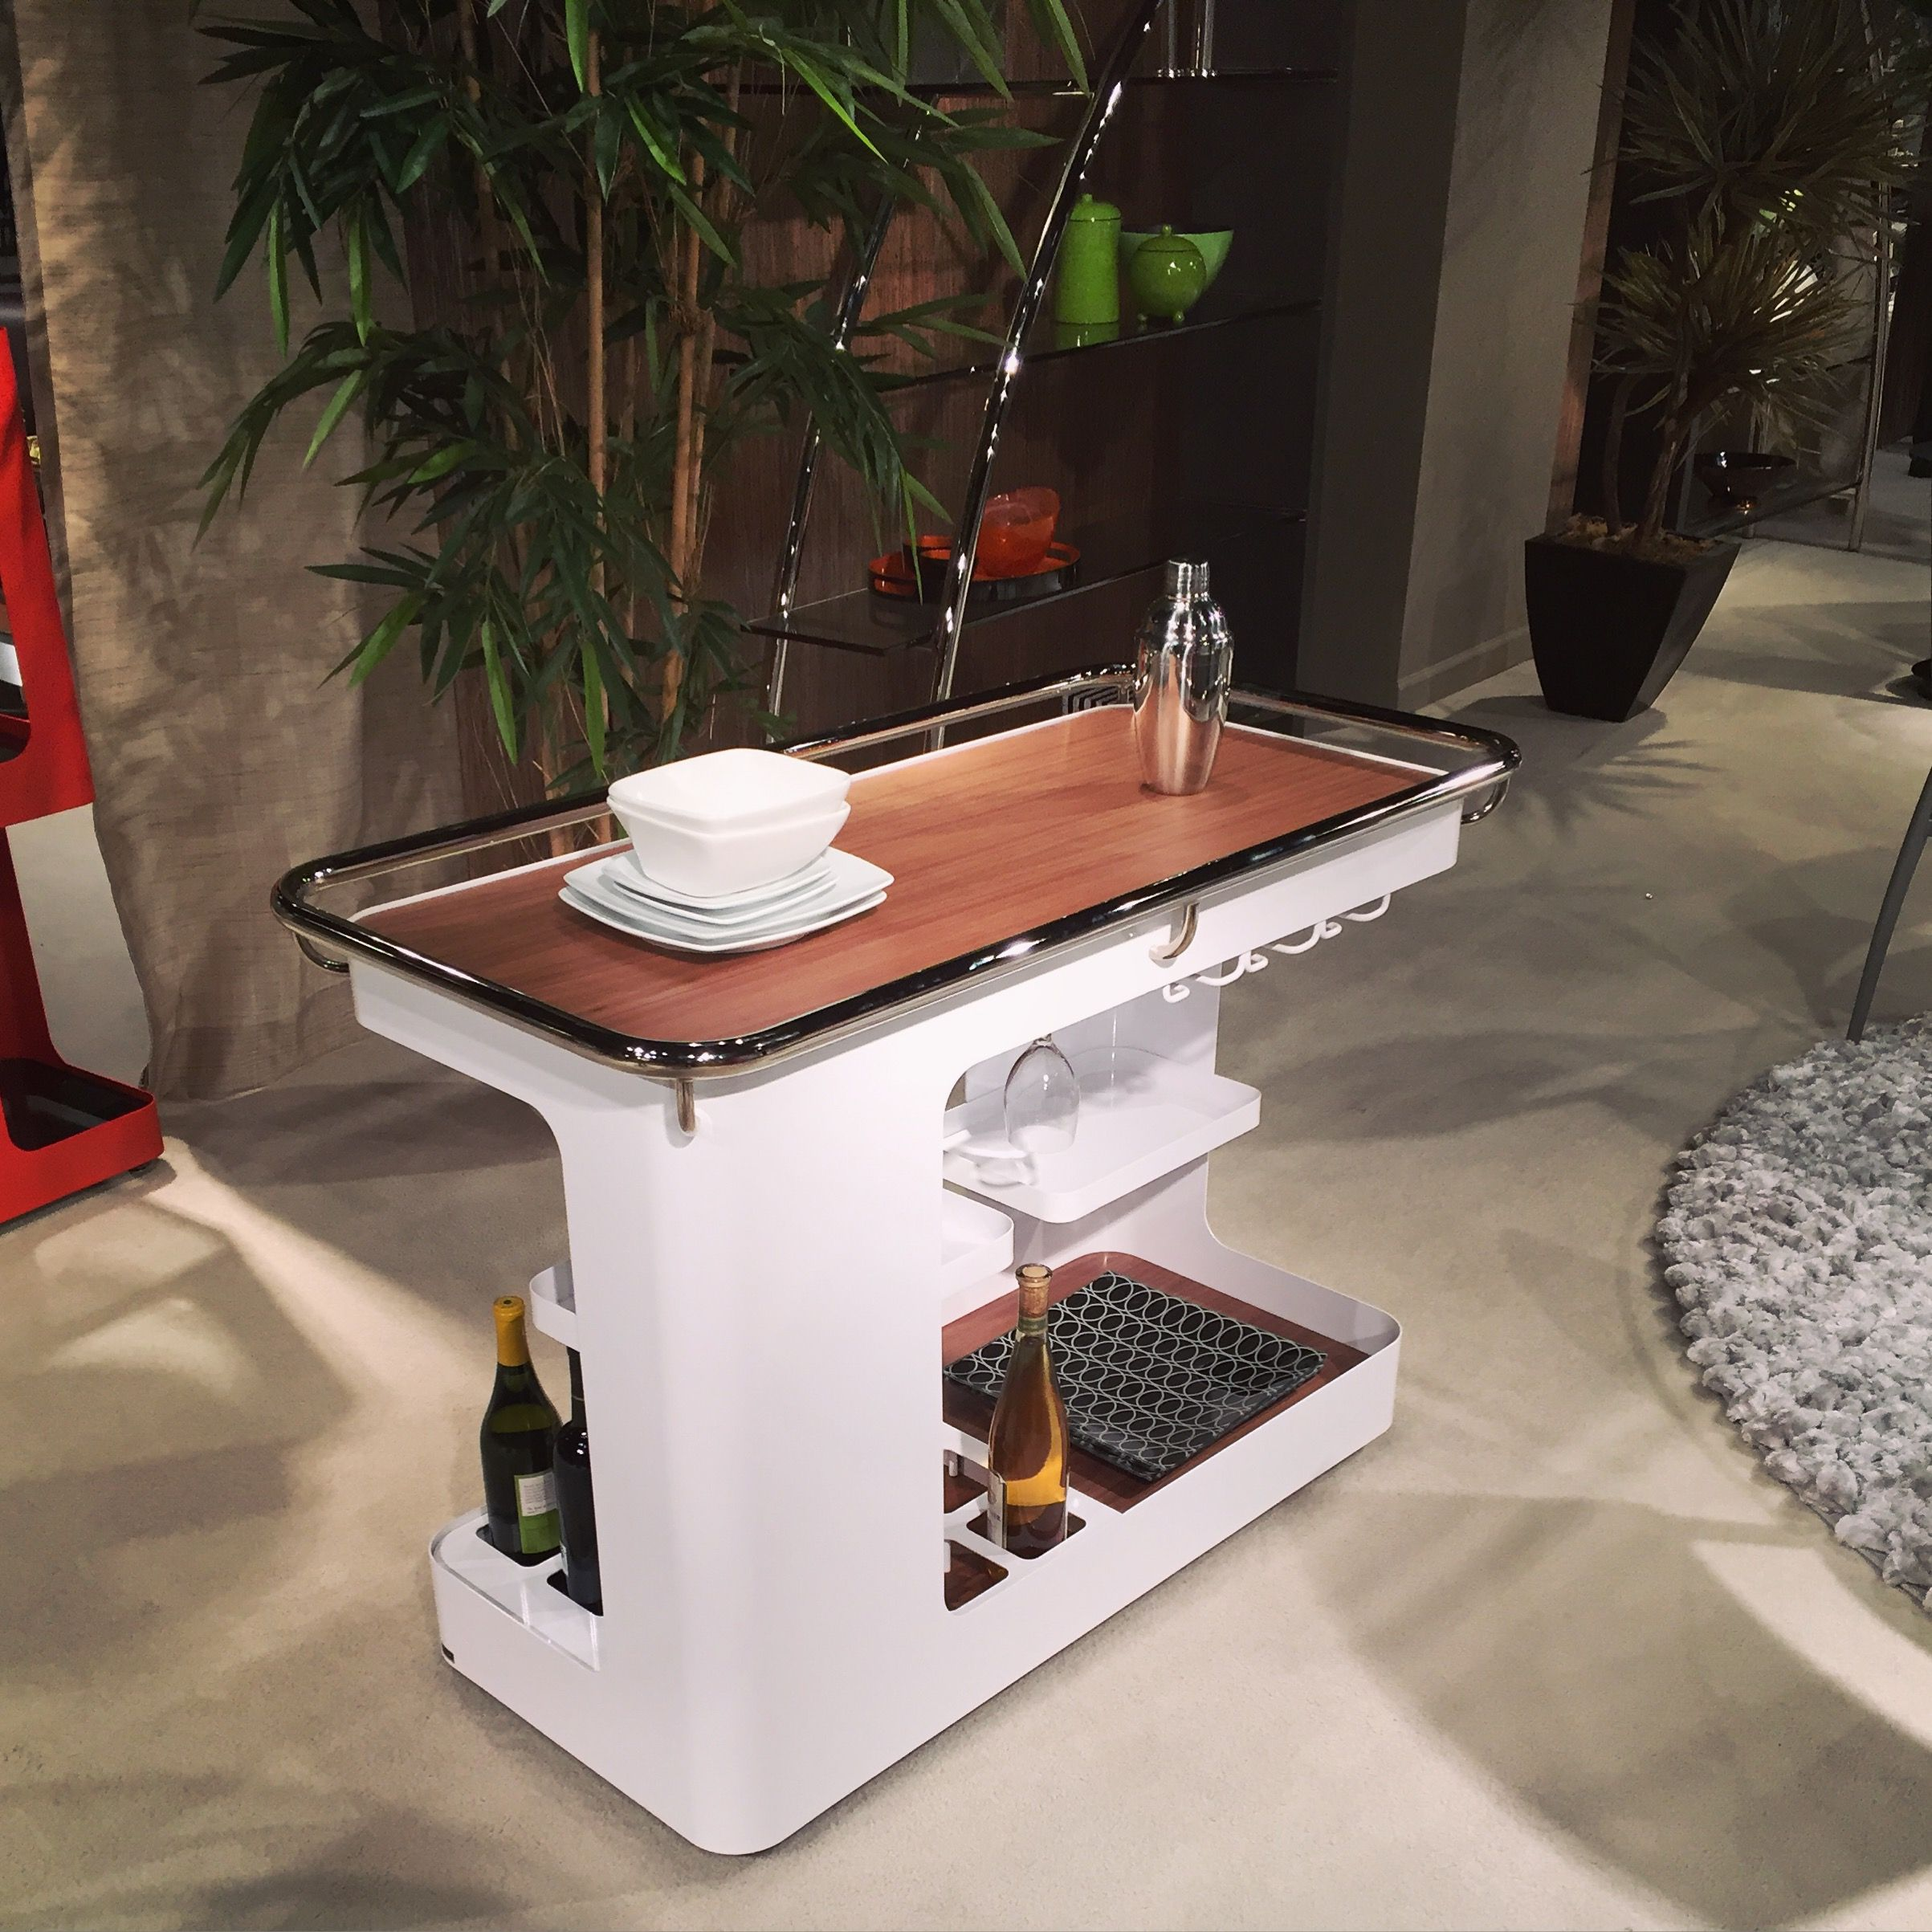 Love this barcart from #hpmkt! #whiteandwood #cheers